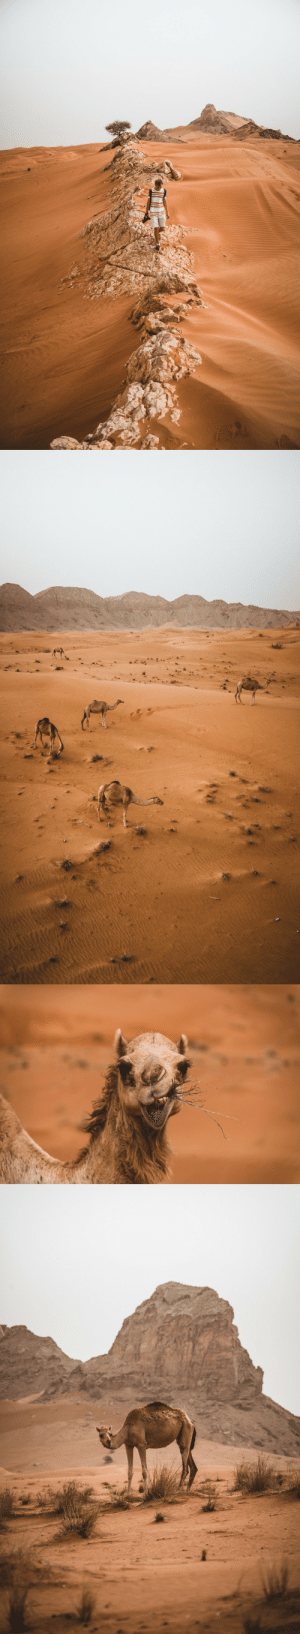 Tumblr, Blog, and Http: bokehm0n:  Camels in the desert.